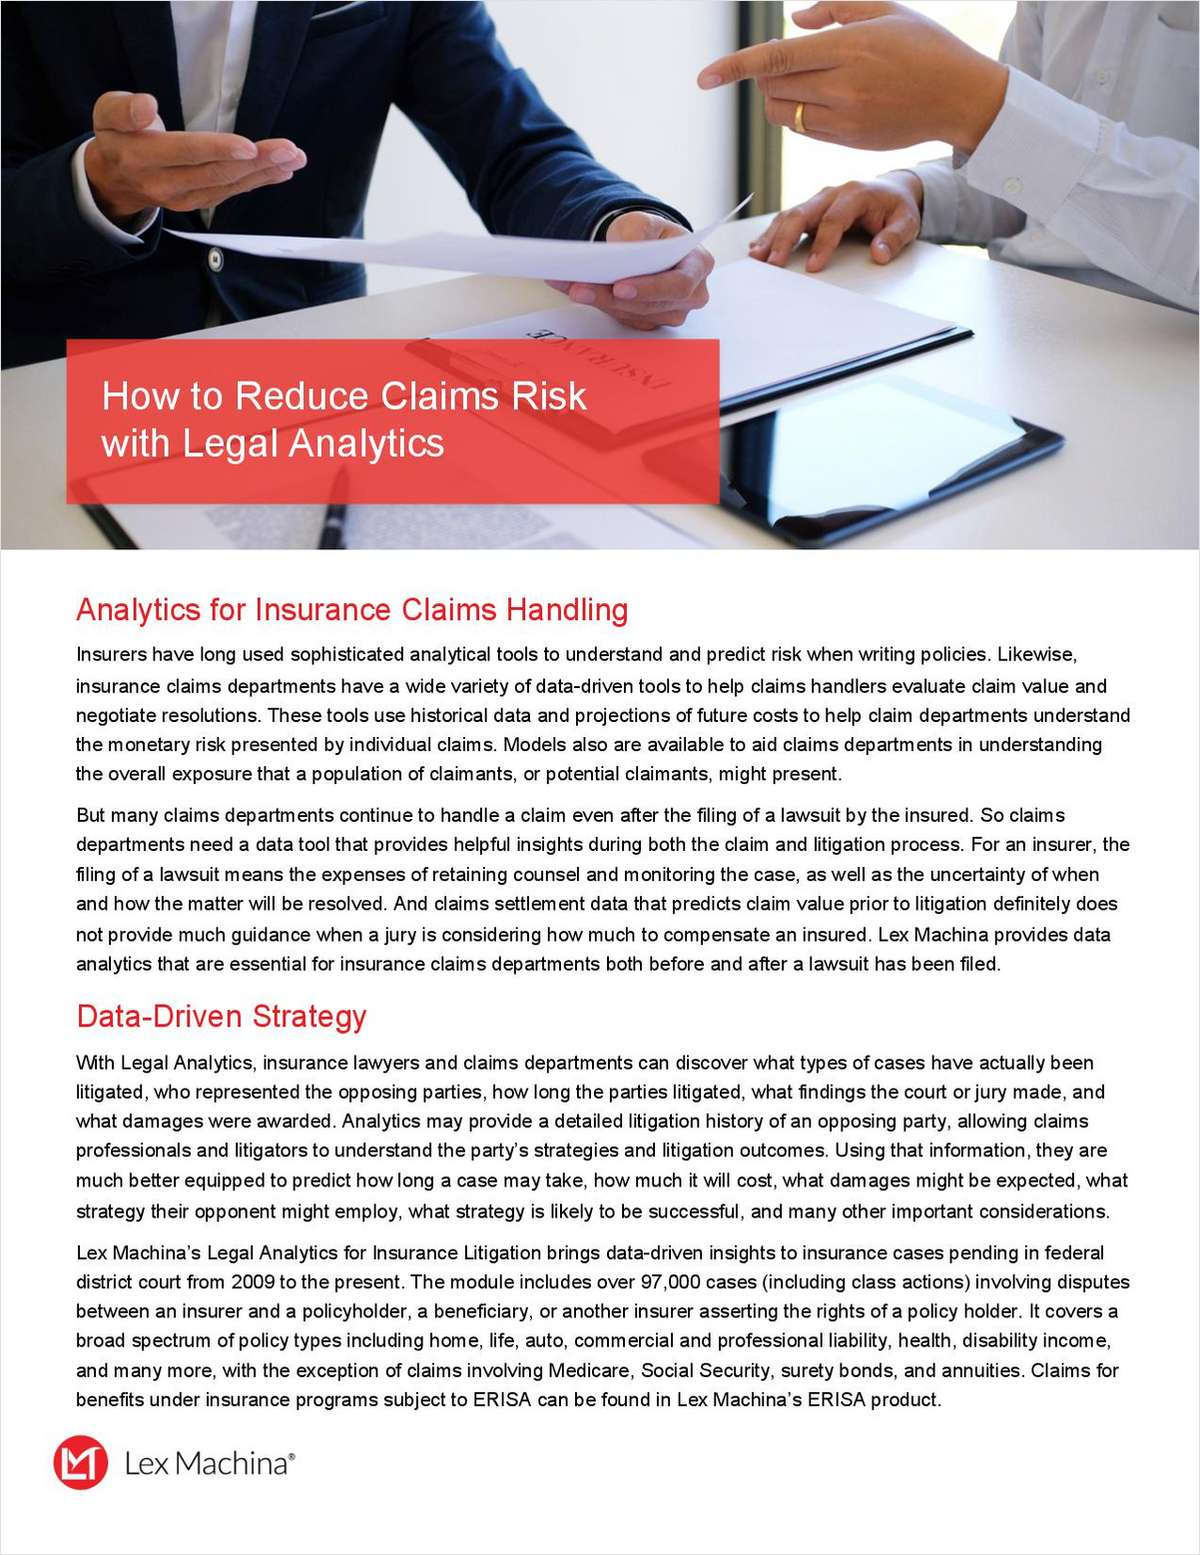 How to Reduce Claims Risk with Legal Analytics